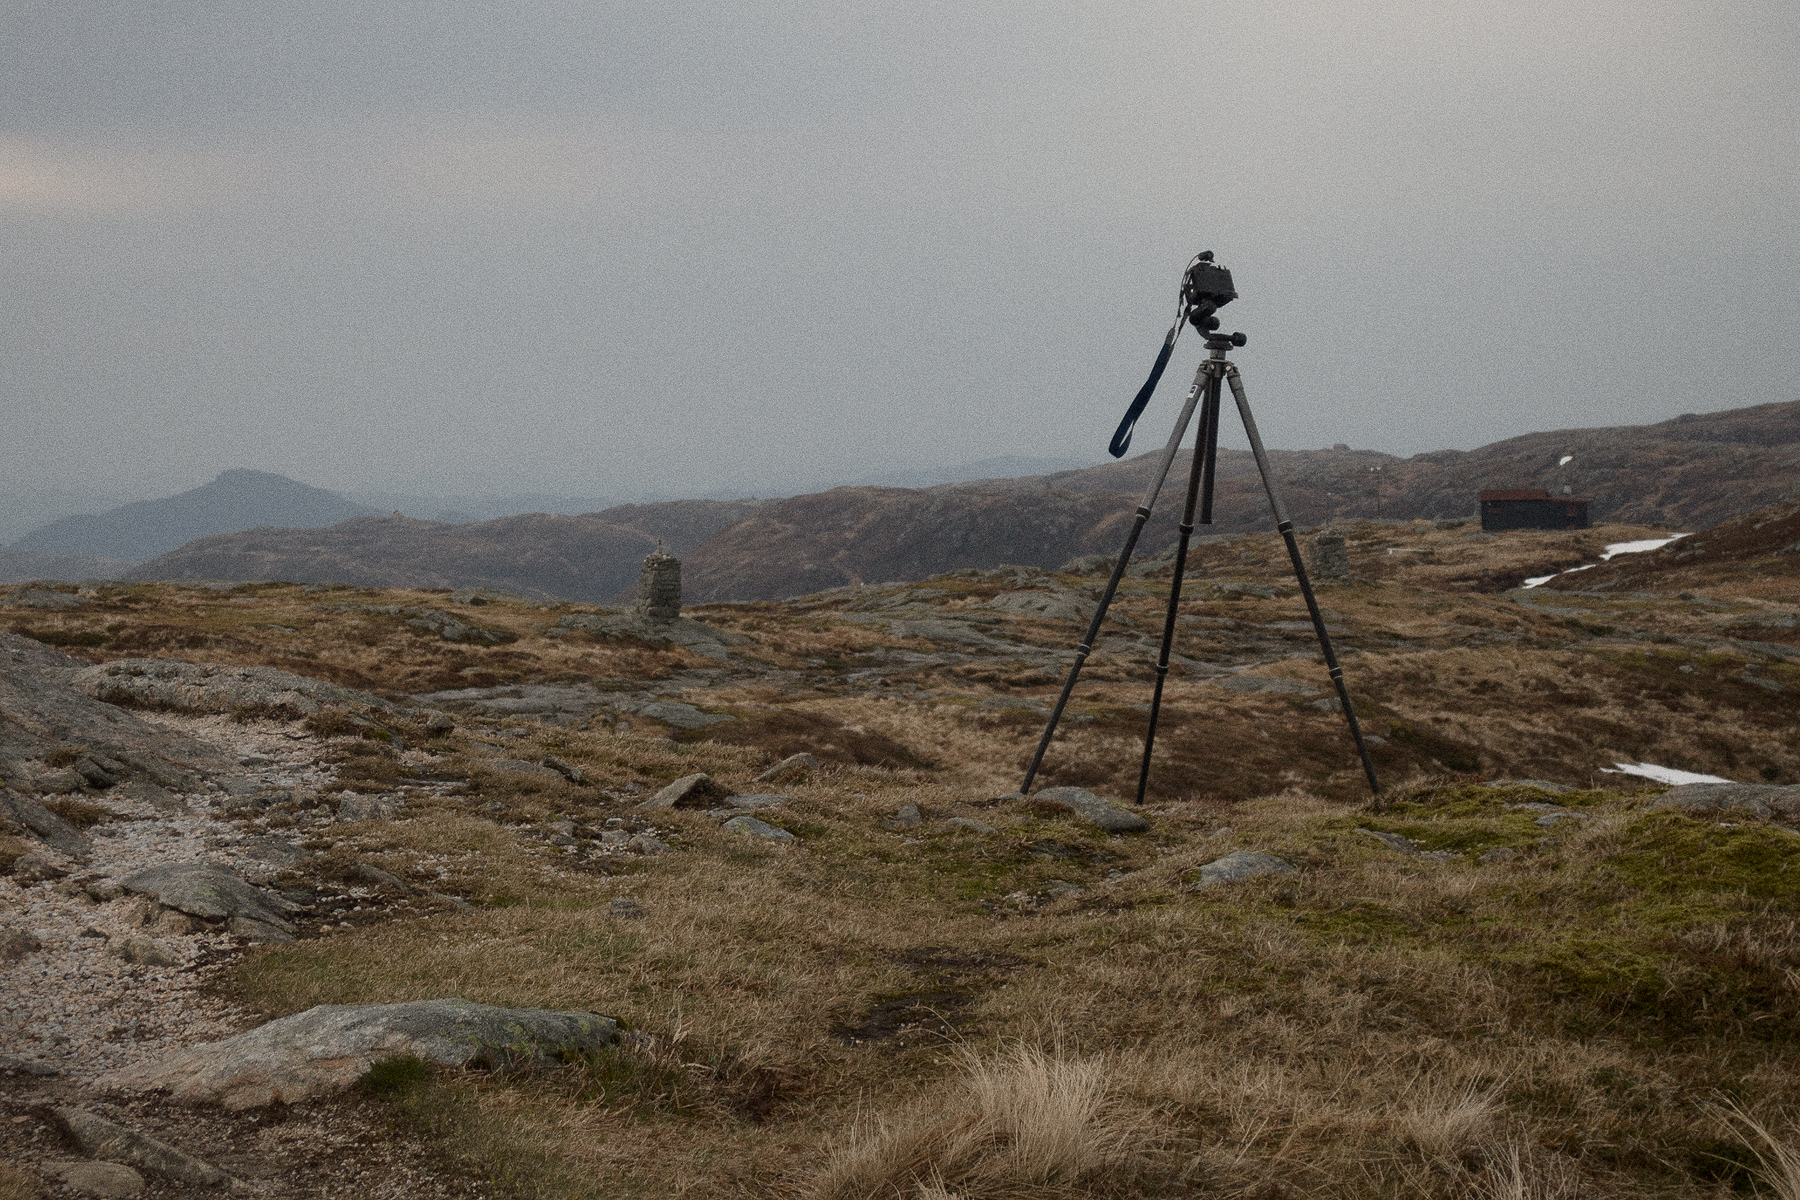 Camera on a tripod, outside in the wind, on a mountain.